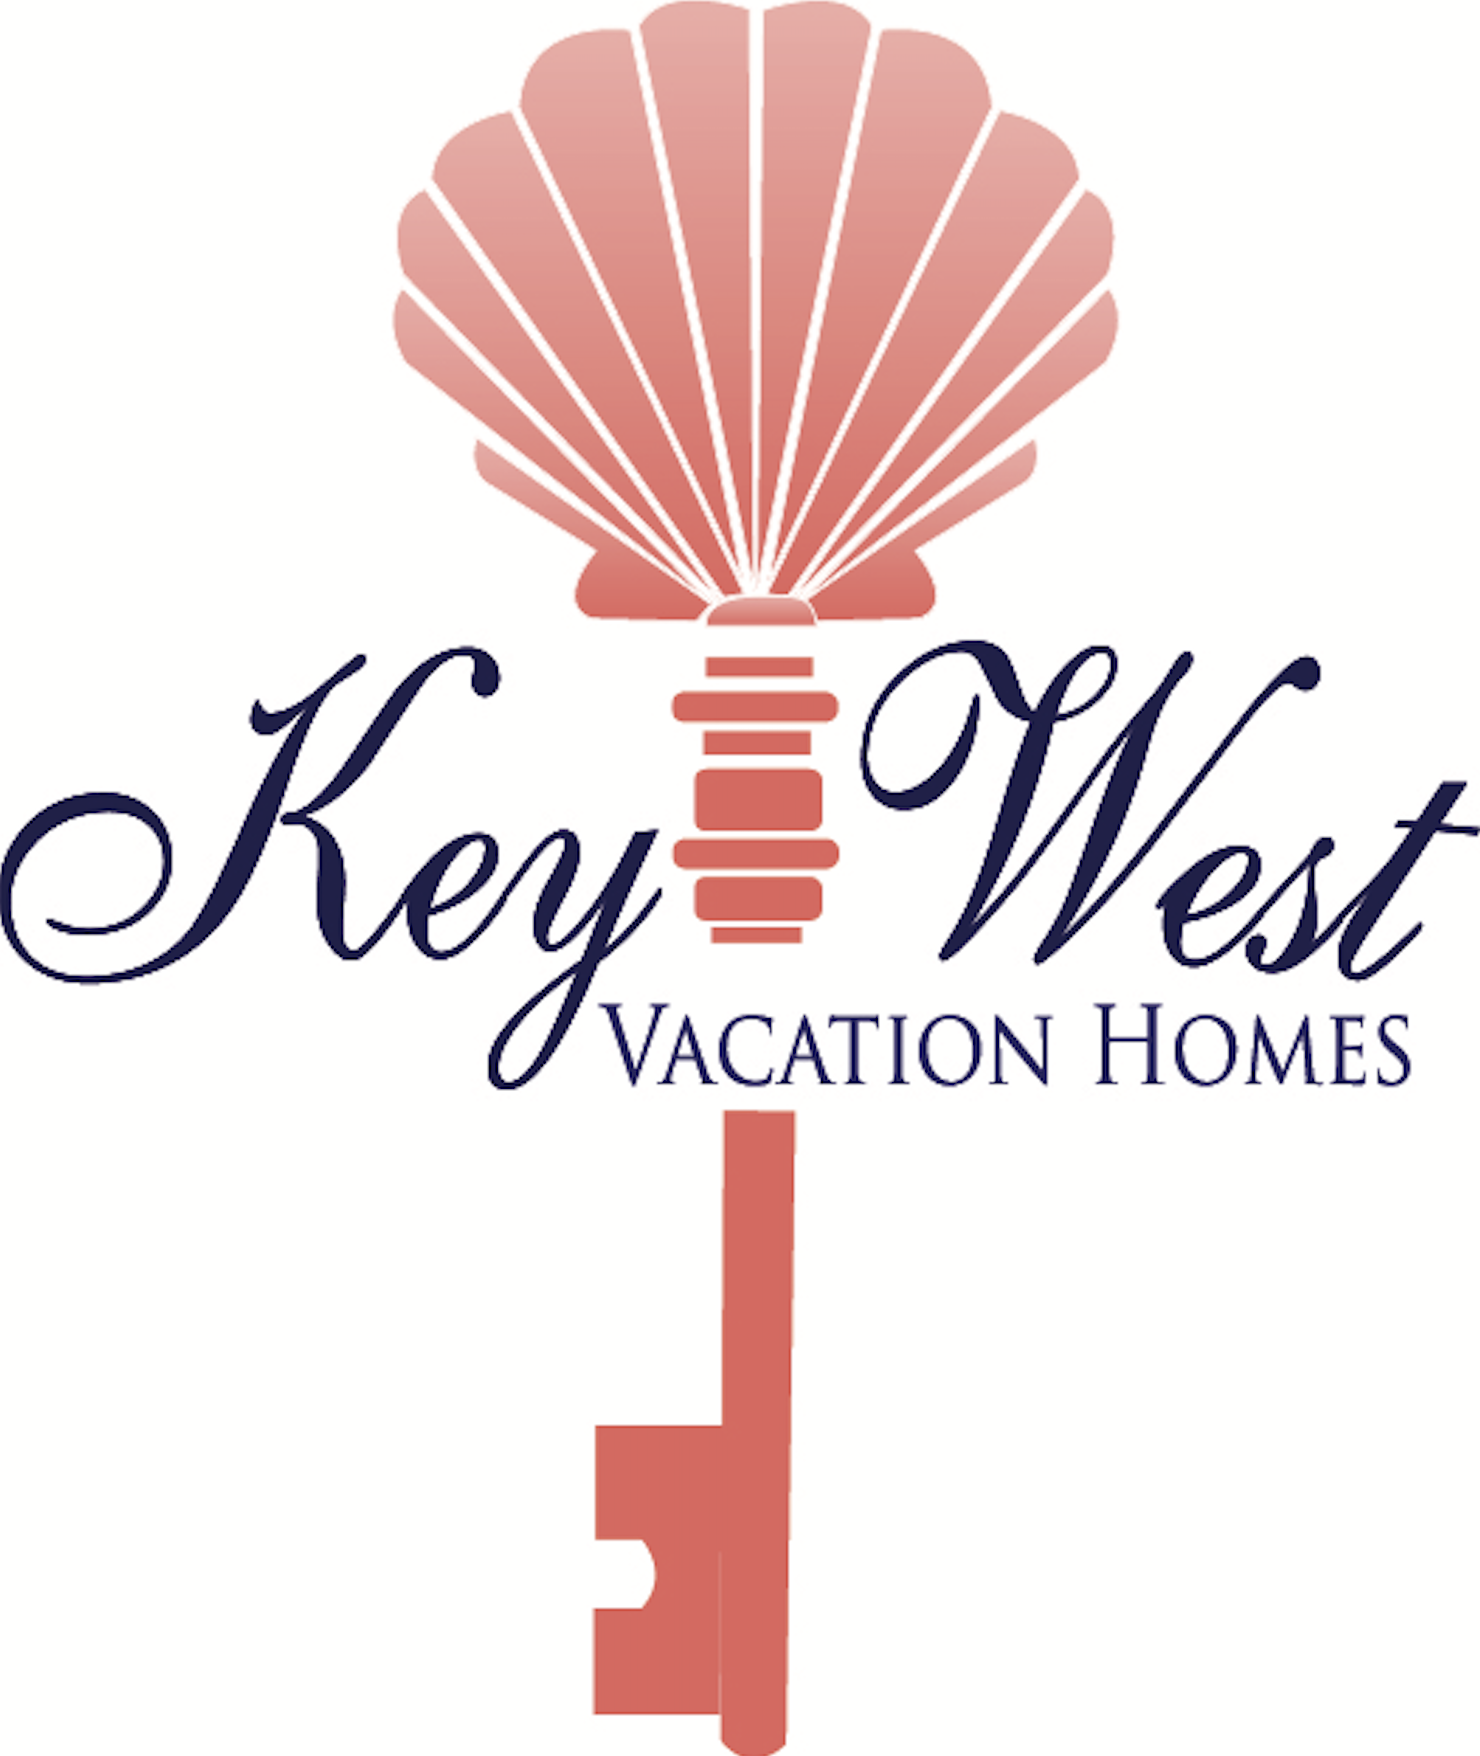 Key West Vacation Homes logo